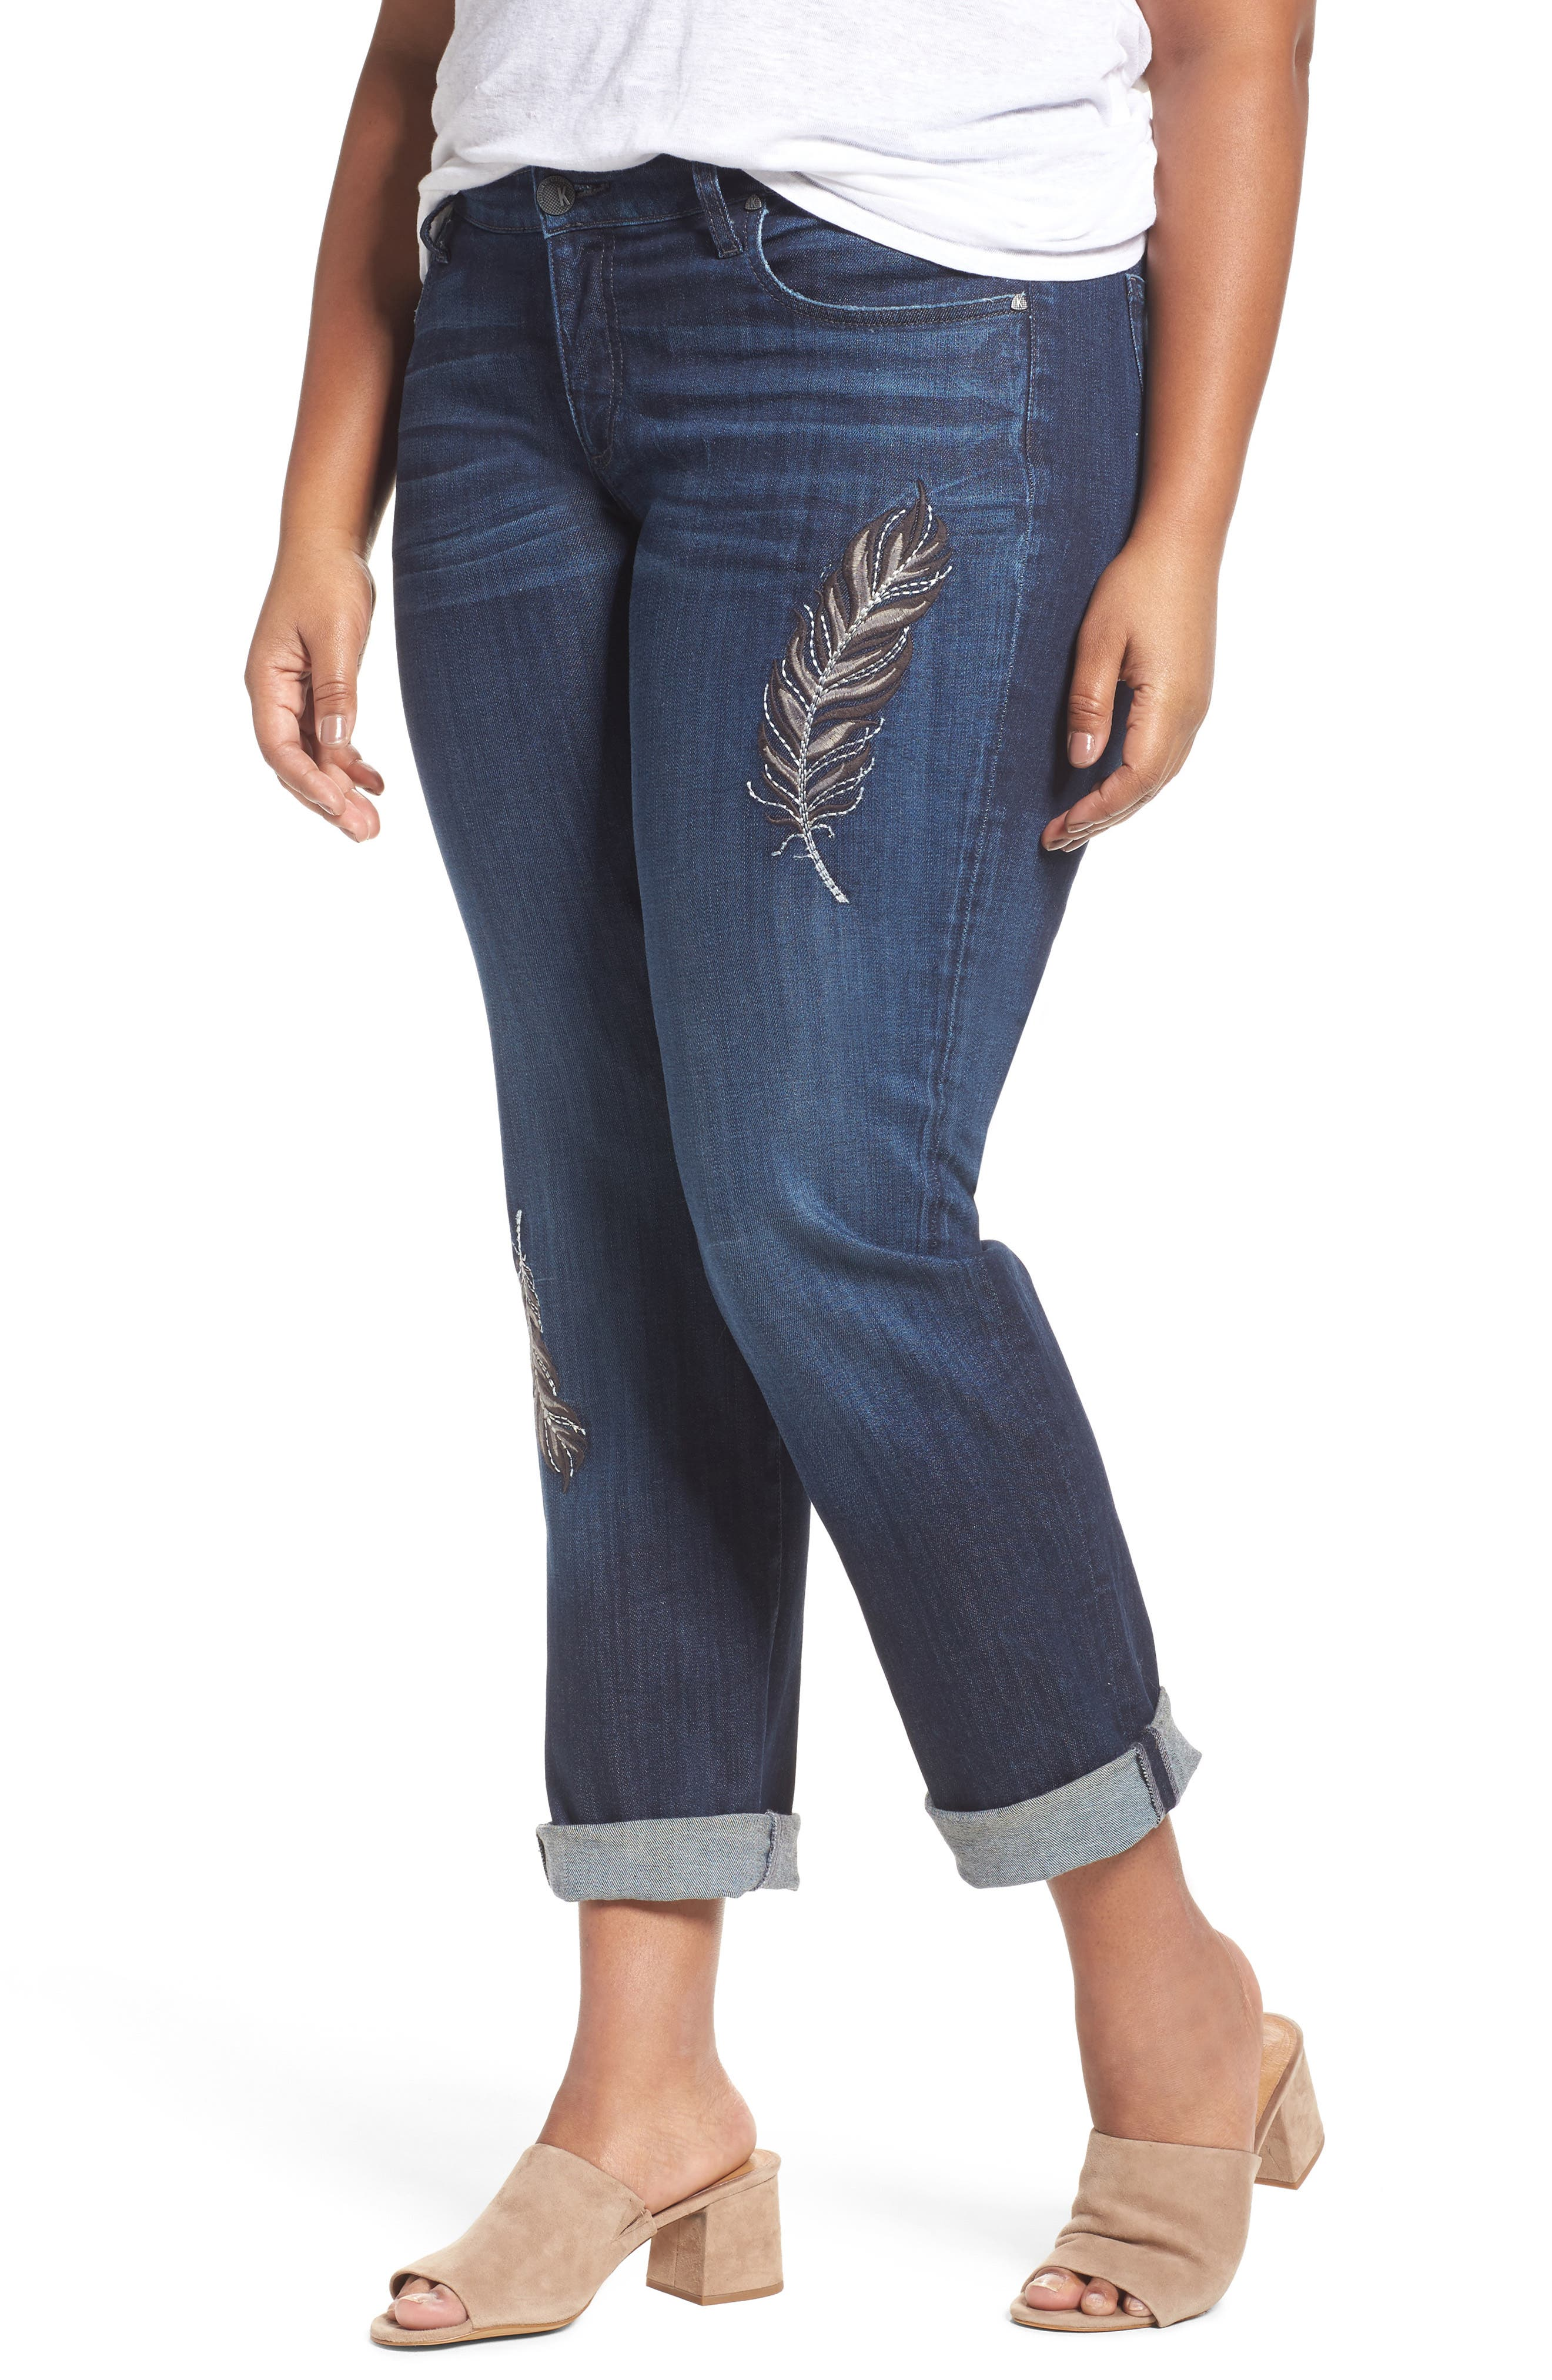 Alternate Image 1 Selected - KUT from The Kloth Catherine Boyfriend Jeans (Overt Dark Stone Base Wash) (Plus Size)